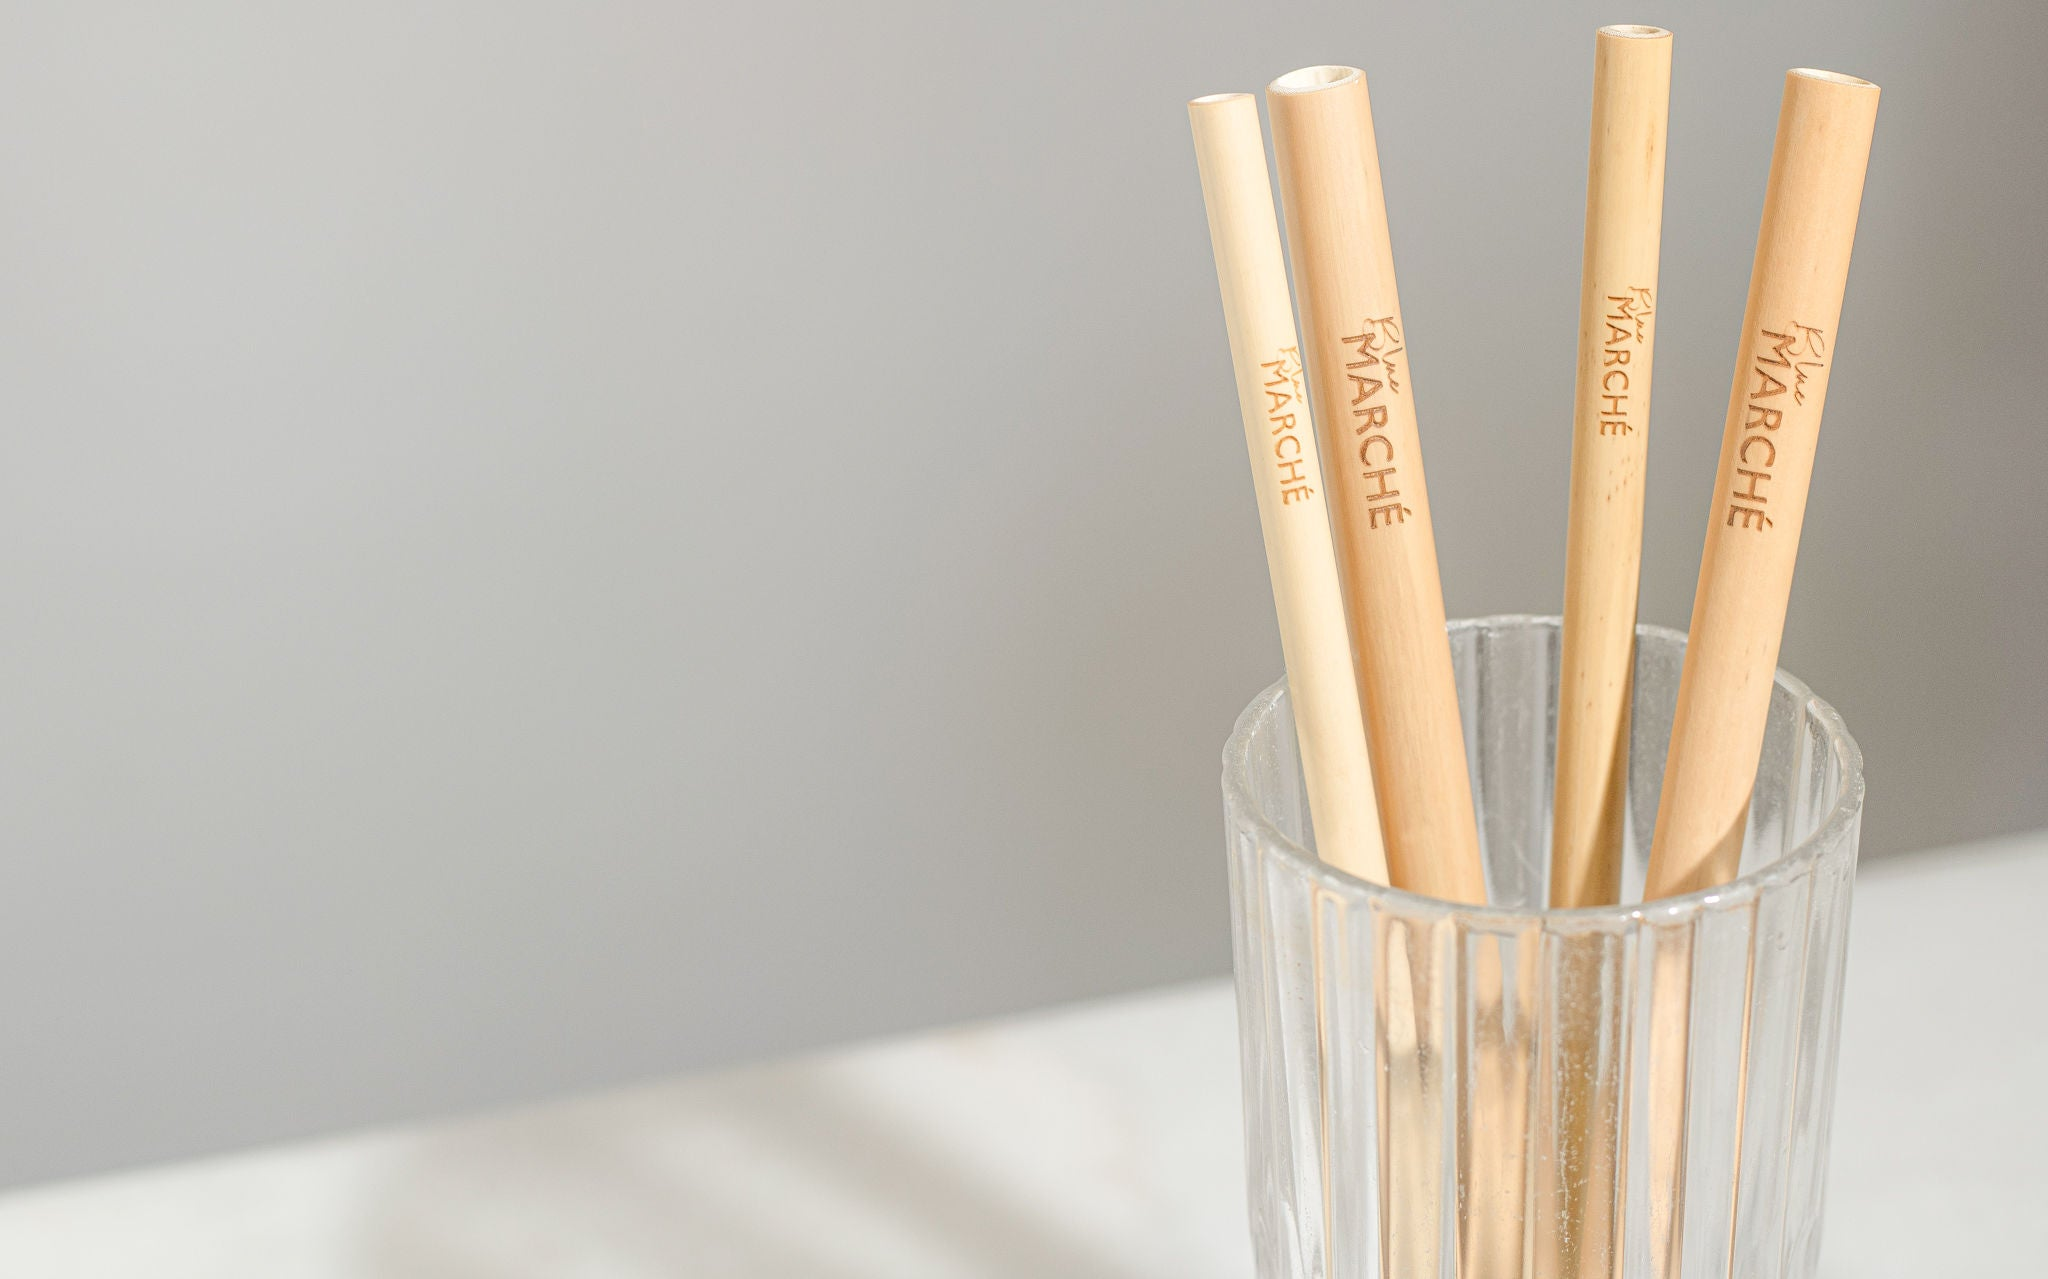 blue marche bamboo straws for smoothies